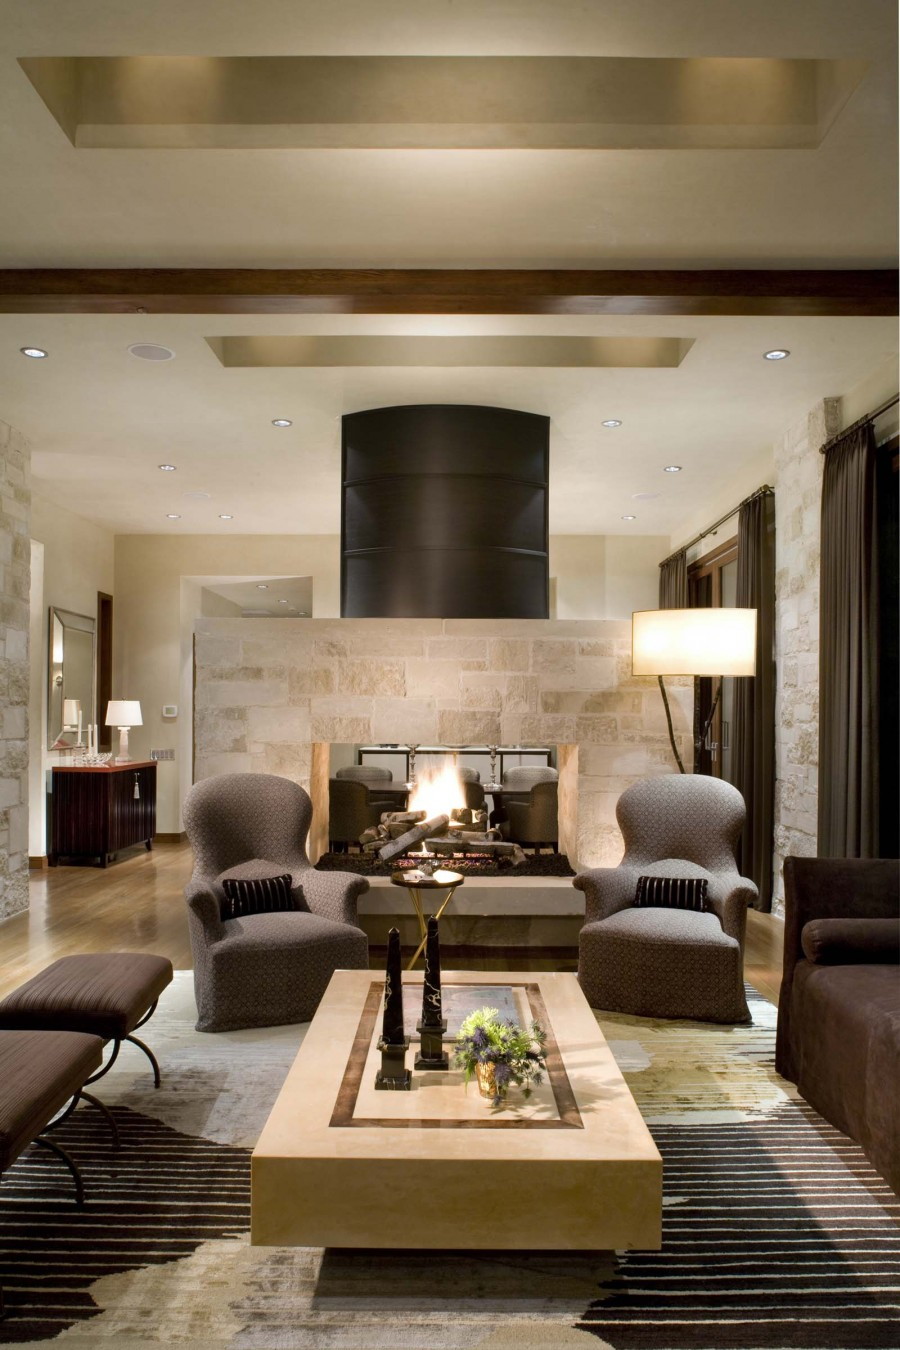 16 fabulous earth tones living room designs decoholic for Sitting room interior